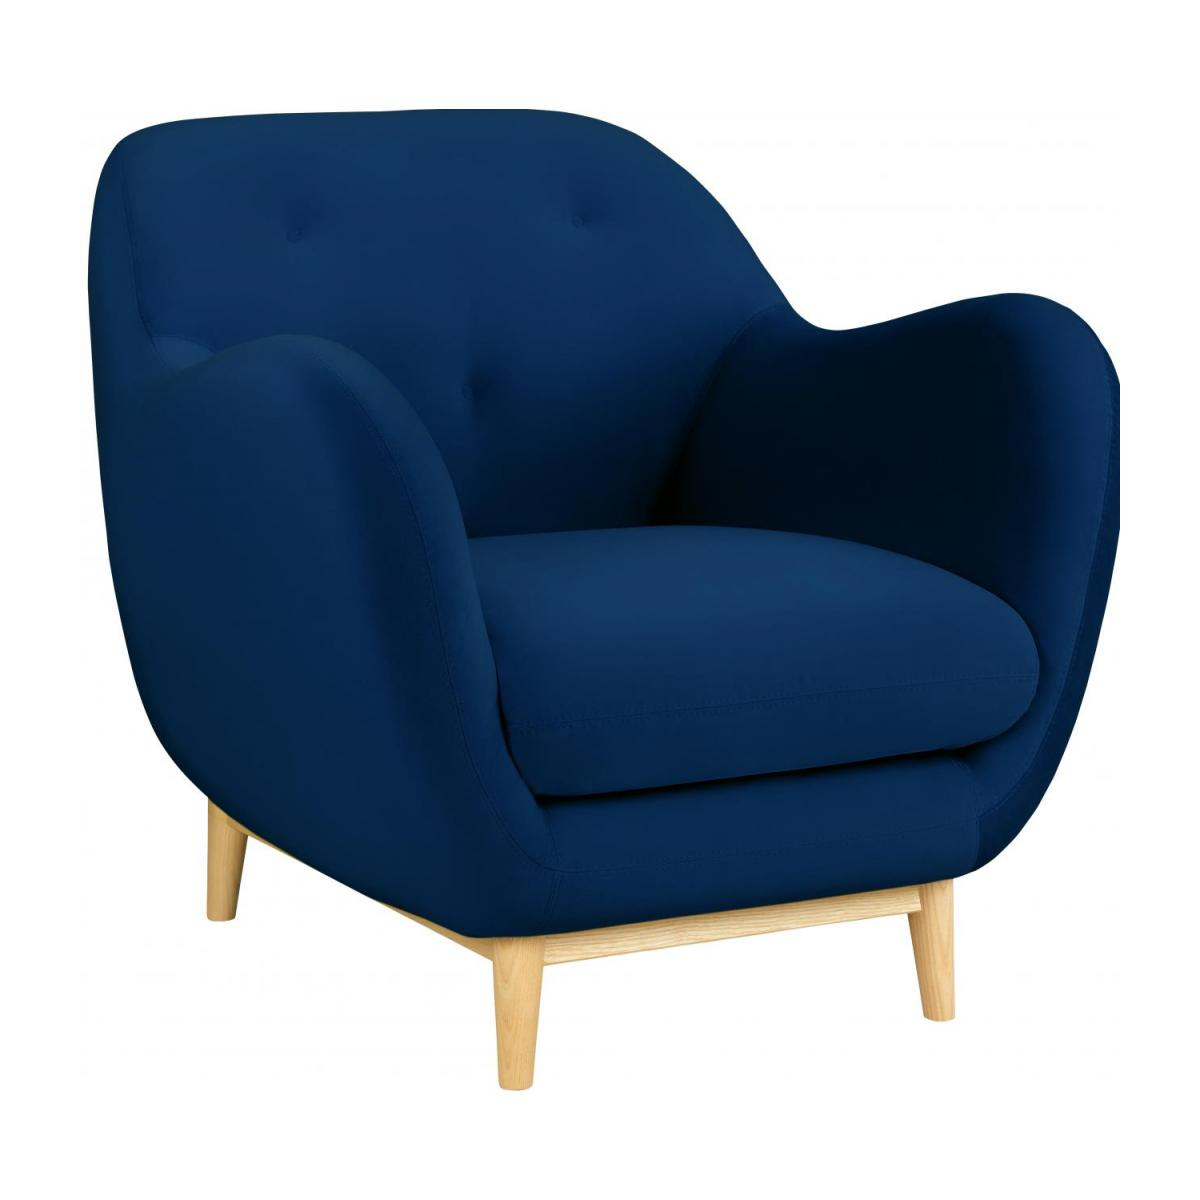 Armchair made of velvet, blue n°1